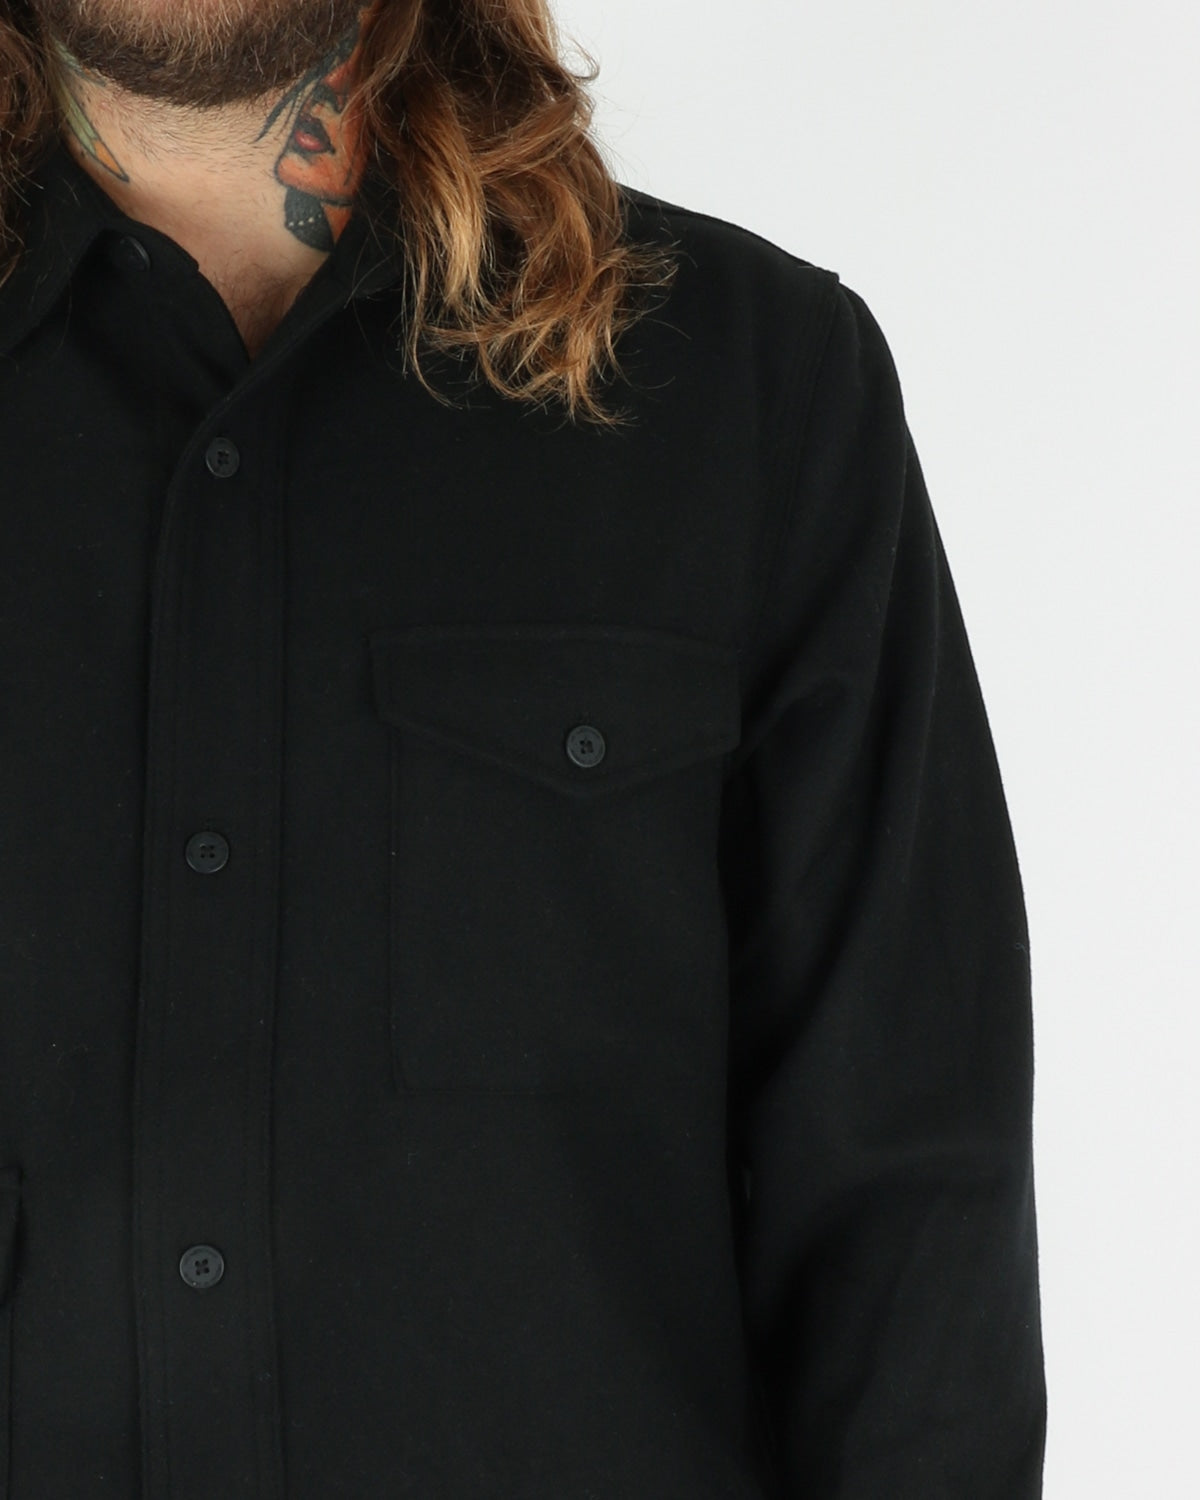 han kjobenhavn_army shirt_black wool_view_3_4